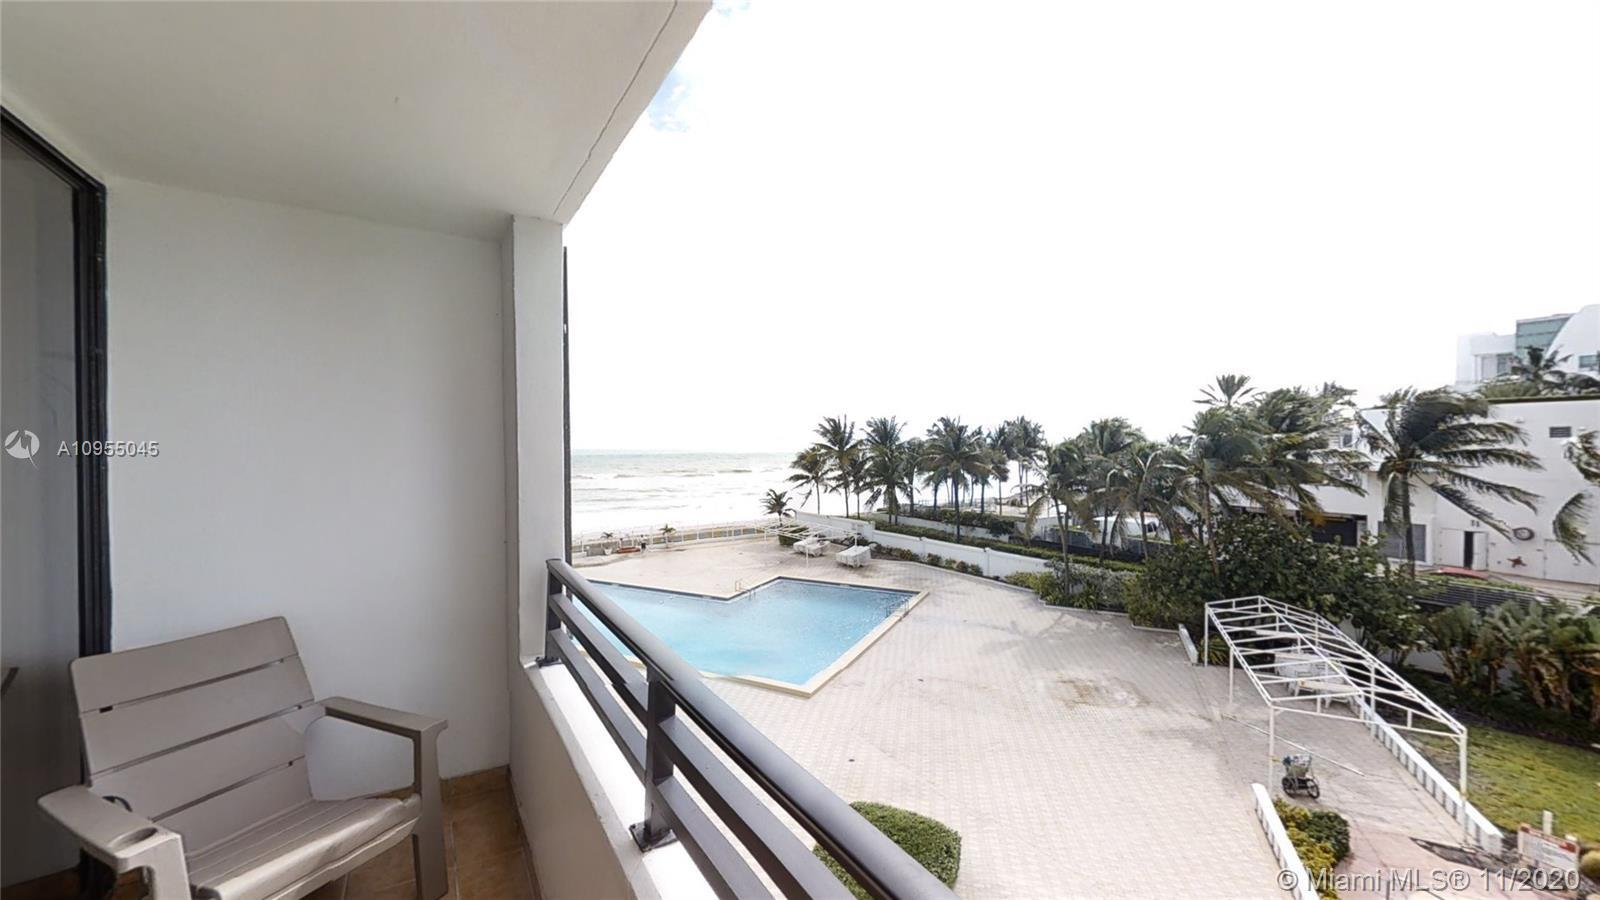 Wonderful Ocean Views, in Hollywood, well care unit. Rare opportunity wont last long. Bbq, pool, bel